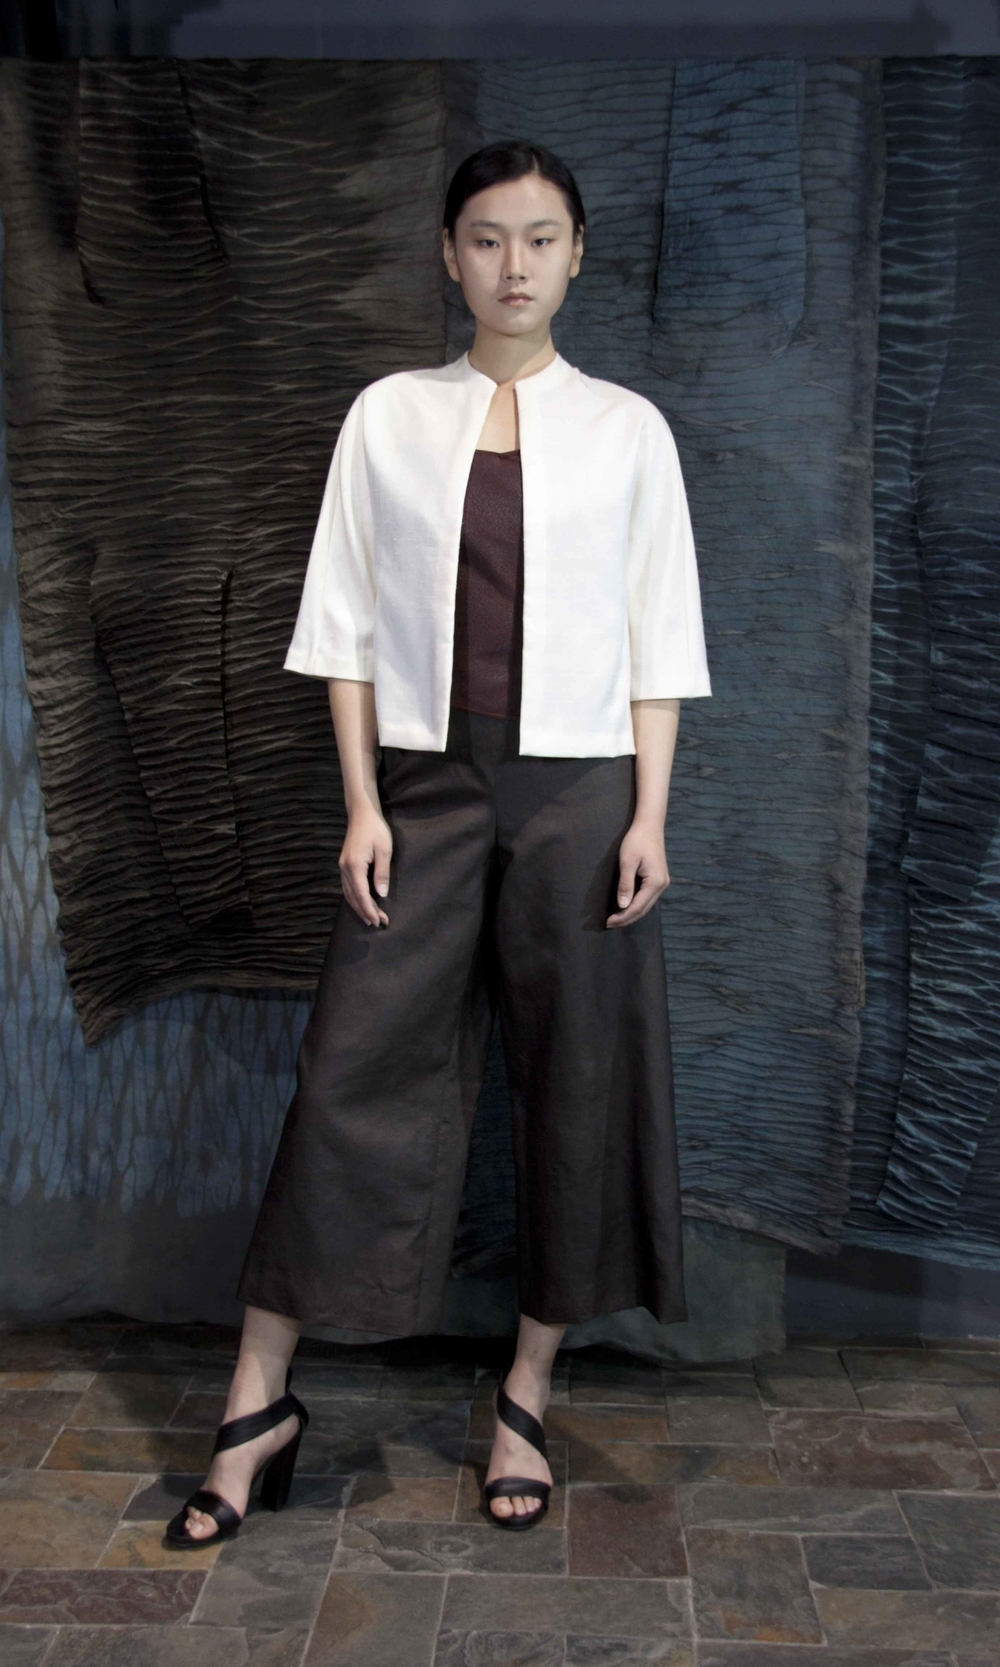 "28-24 White Tussah silk jacket/ Red-tea-silk top/ Tea-silk 3/4 pants  /   白色柞蚕丝夹克  /  红芸纱吊带上衣  /  香云纱  3/4  阔腿裤                                                                                                                                                                                                                                                                                                     /* Style Definitions */  table.MsoNormalTable 	{mso-style-name:""Table Normal""; 	mso-tstyle-rowband-size:0; 	mso-tstyle-colband-size:0; 	mso-style-noshow:yes; 	mso-style-priority:99; 	mso-style-qformat:yes; 	mso-style-parent:""""; 	mso-padding-alt:0in 5.4pt 0in 5.4pt; 	mso-para-margin-top:0in; 	mso-para-margin-right:0in; 	mso-para-margin-bottom:10.0pt; 	mso-para-margin-left:0in; 	line-height:115%; 	mso-pagination:widow-orphan; 	font-size:11.0pt; 	font-family:""Calibri"",""sans-serif""; 	mso-ascii-font-family:Calibri; 	mso-ascii-theme-font:minor-latin; 	mso-hansi-font-family:Calibri; 	mso-hansi-theme-font:minor-latin; 	mso-bidi-font-family:""Times New Roman""; 	mso-bidi-theme-font:minor-bidi;}"